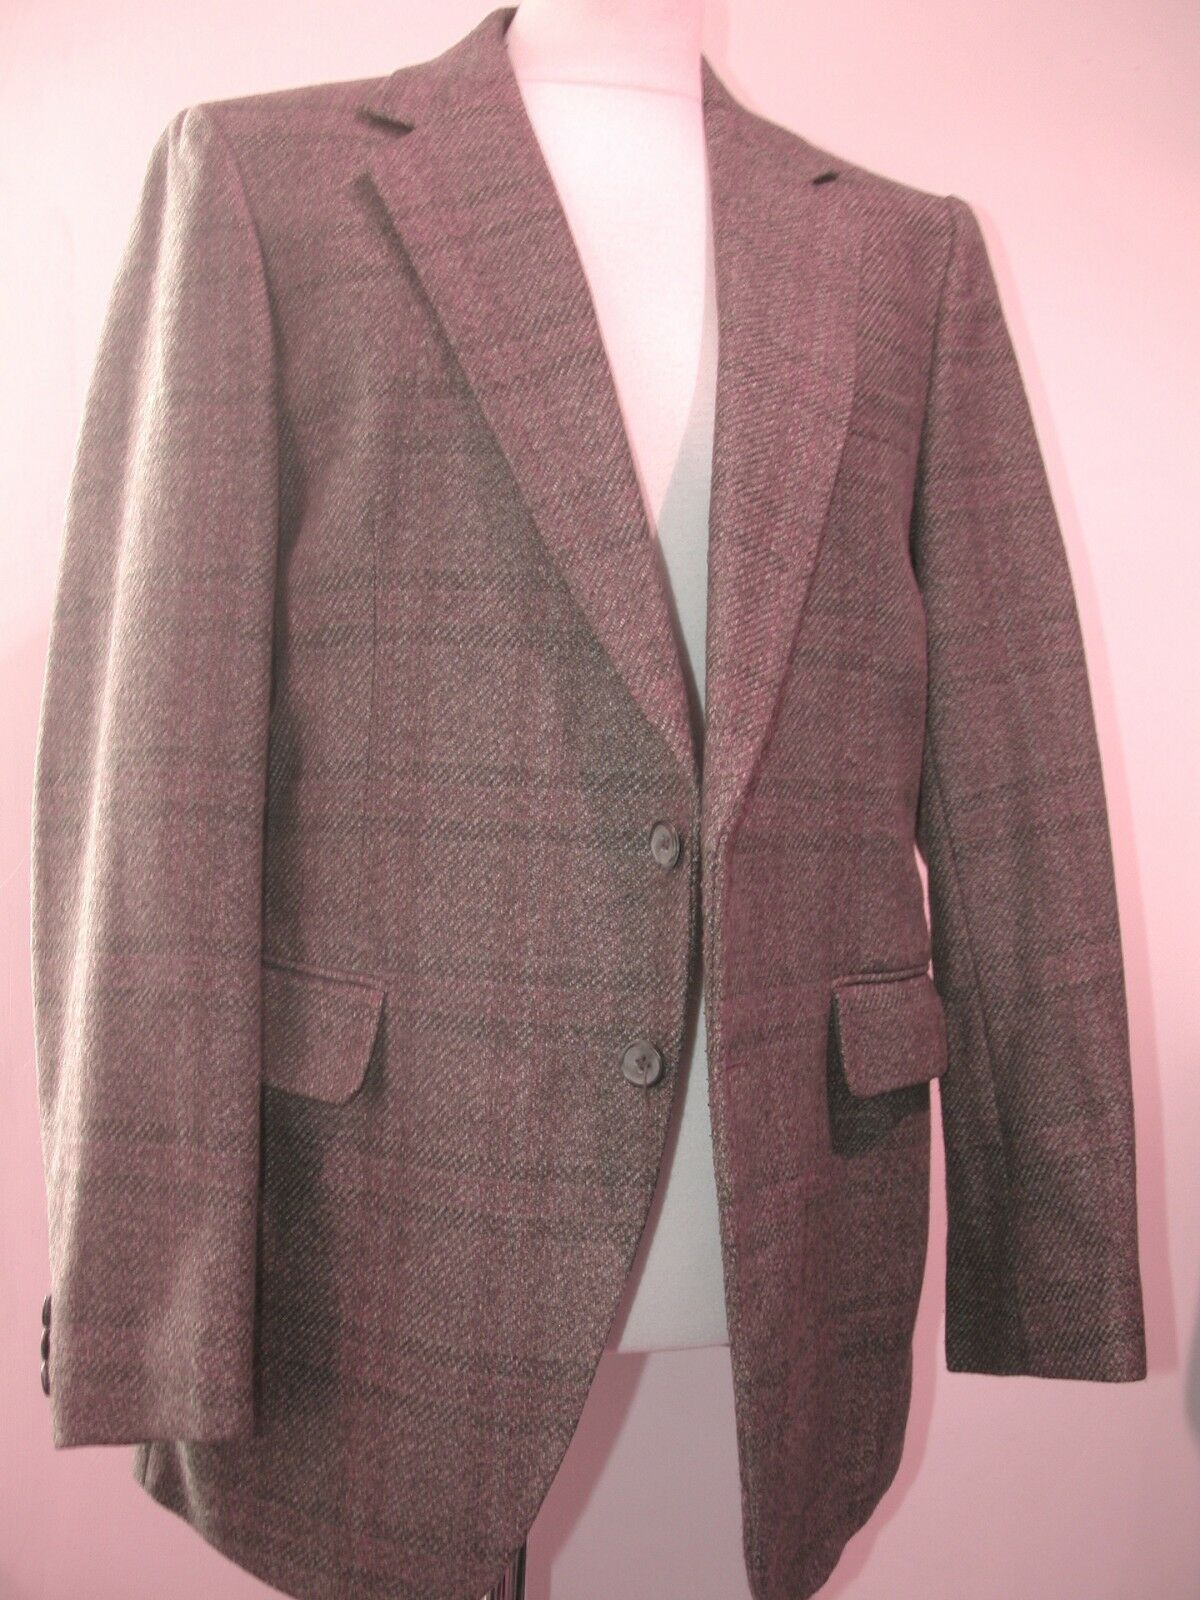 CLASSIC VINTAGE 'GRENDALE' wolleBLEND BLAZER - ABOUT A 38 R